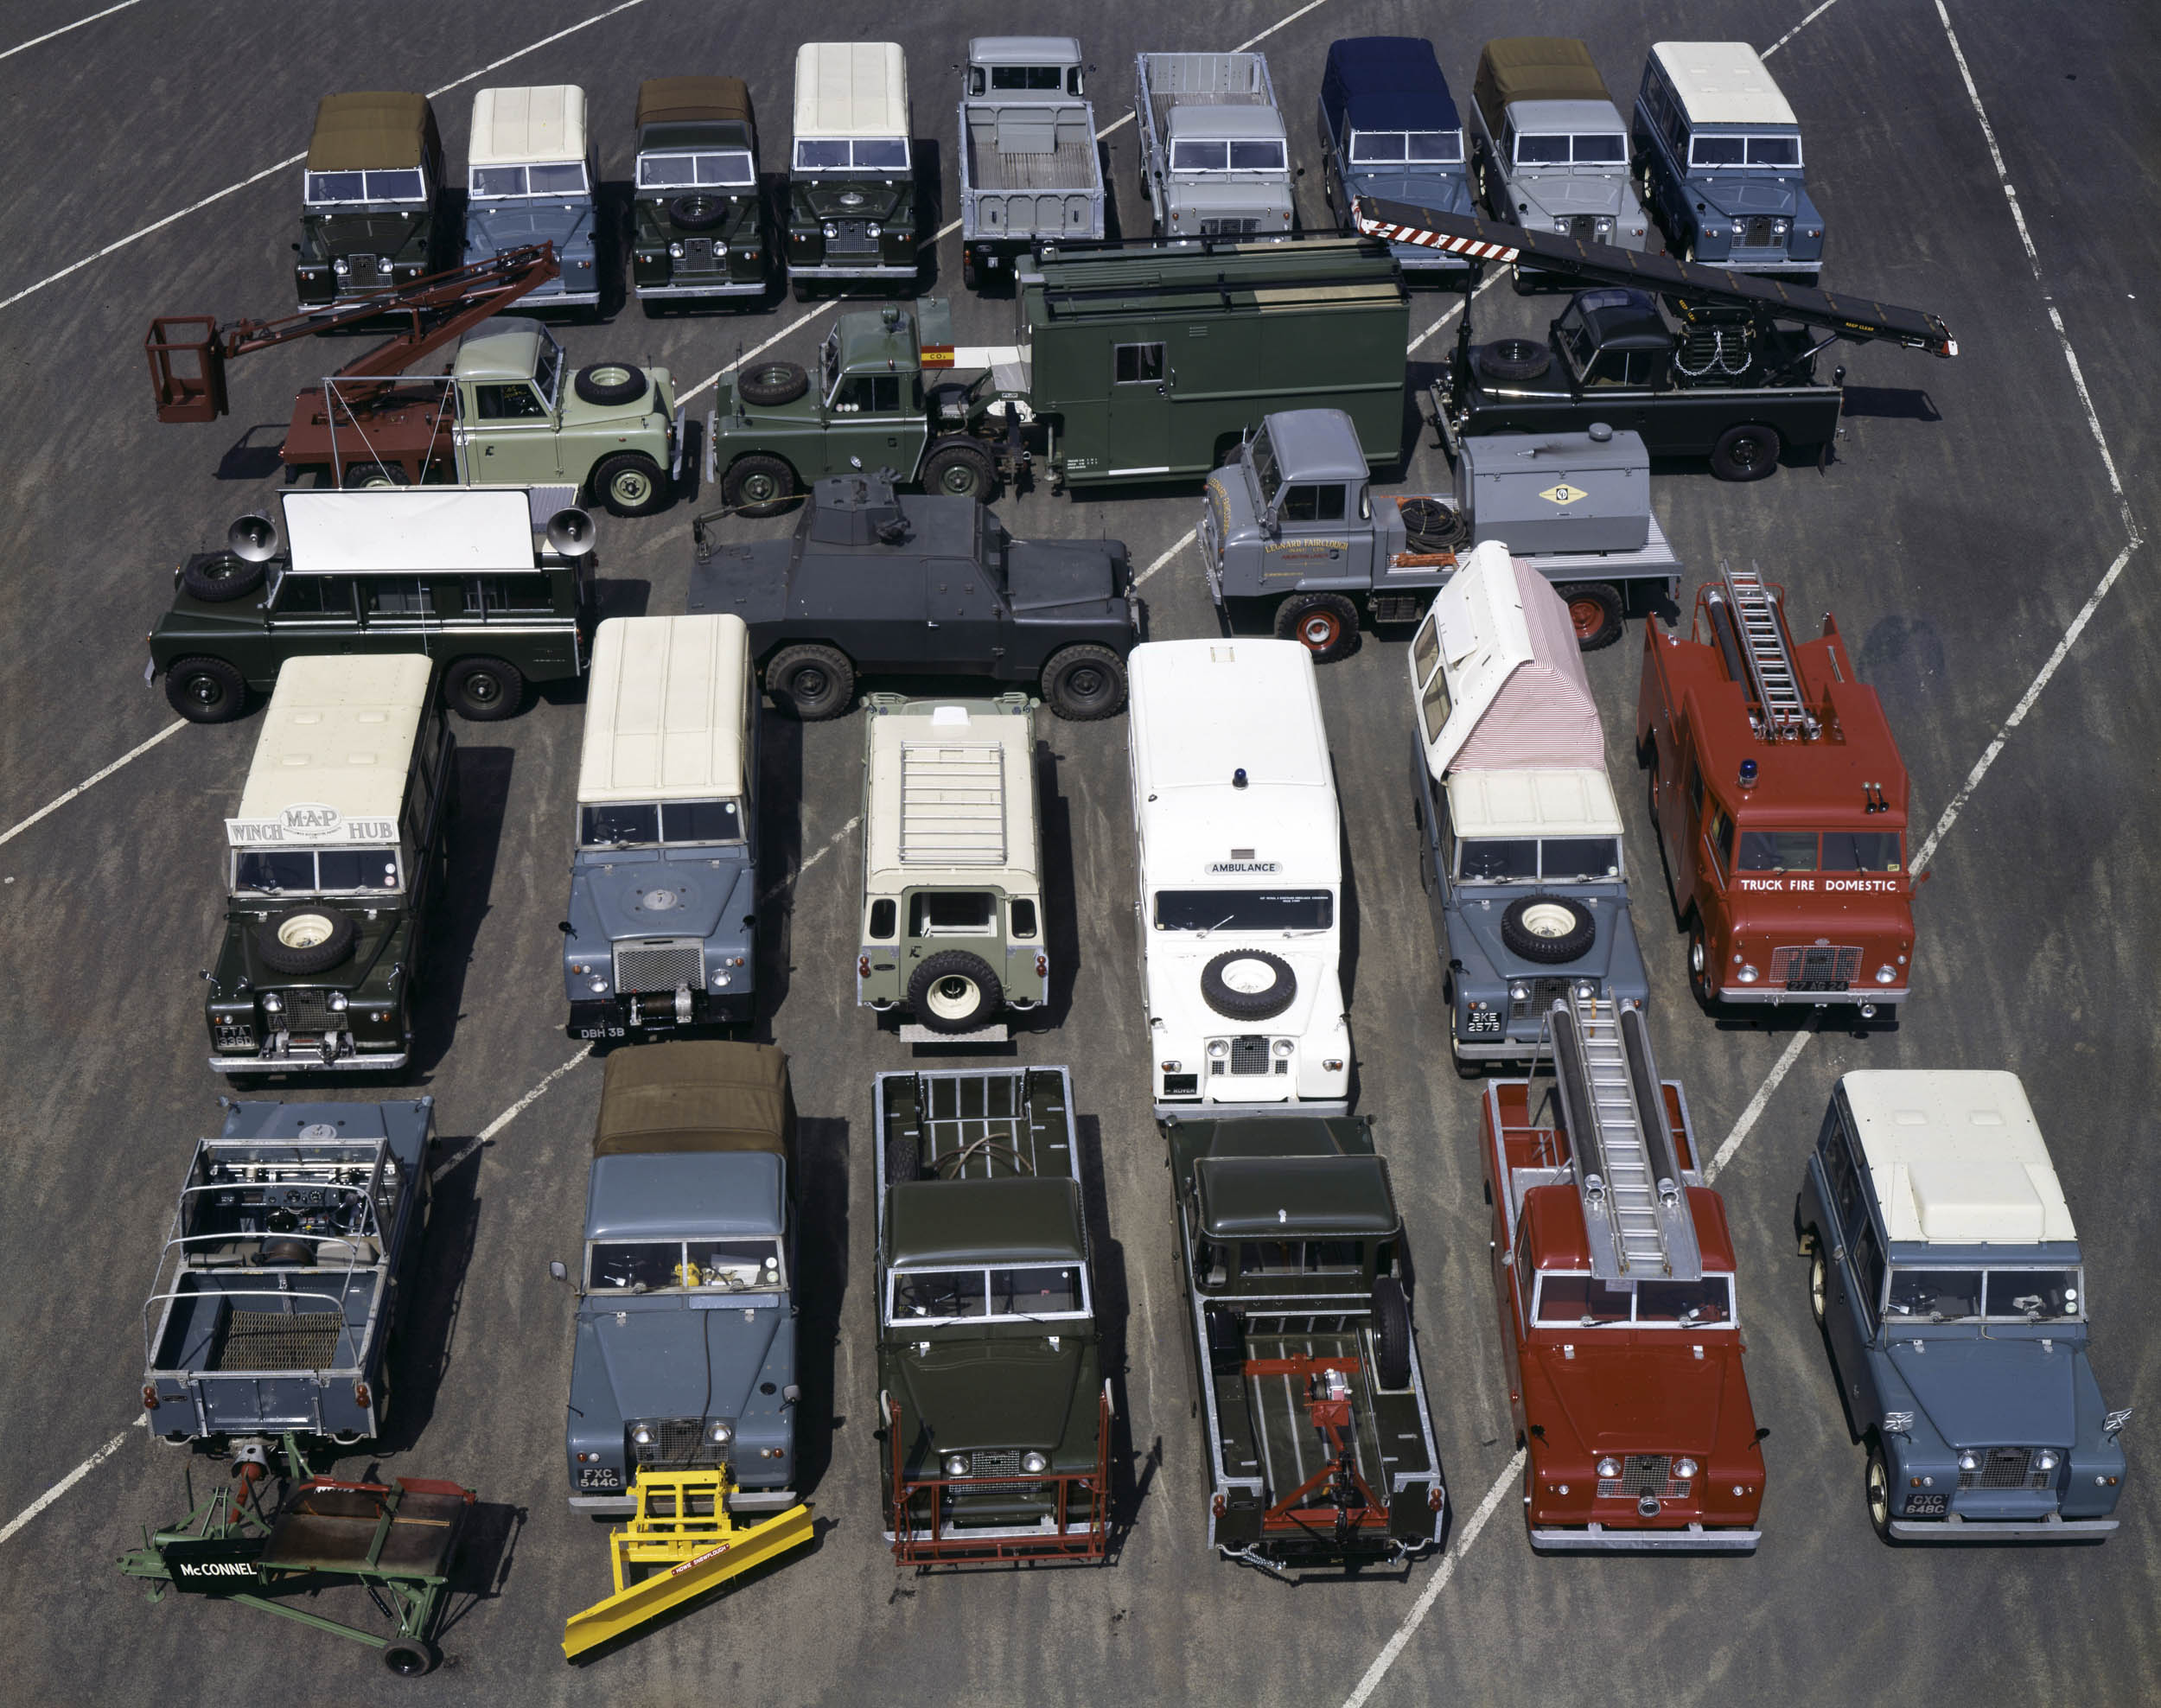 Land Rover specialist vehicles 1960s